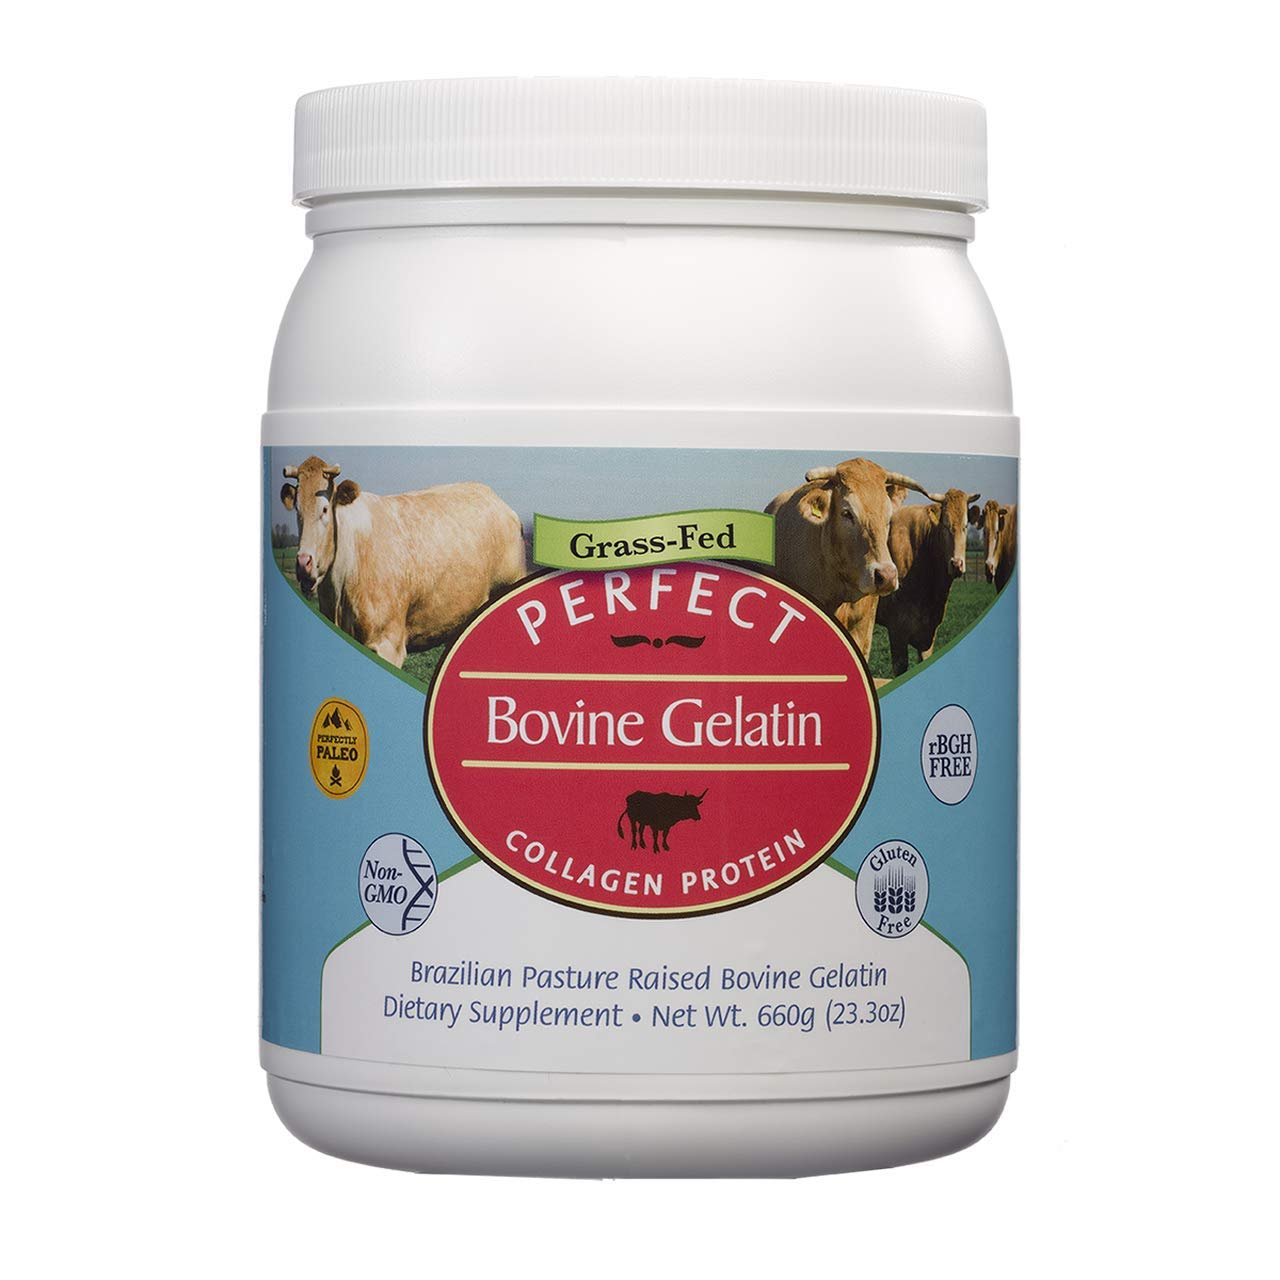 Perfect Bovine Gelatin 100% Grass Fed Pure Beef Gelatin (Cooked Collagen) Powder, Brazilian Pasture Raised ~ Large 23.3oz. 60 Serving Container~ No Fillers, GMOs or Pesticides